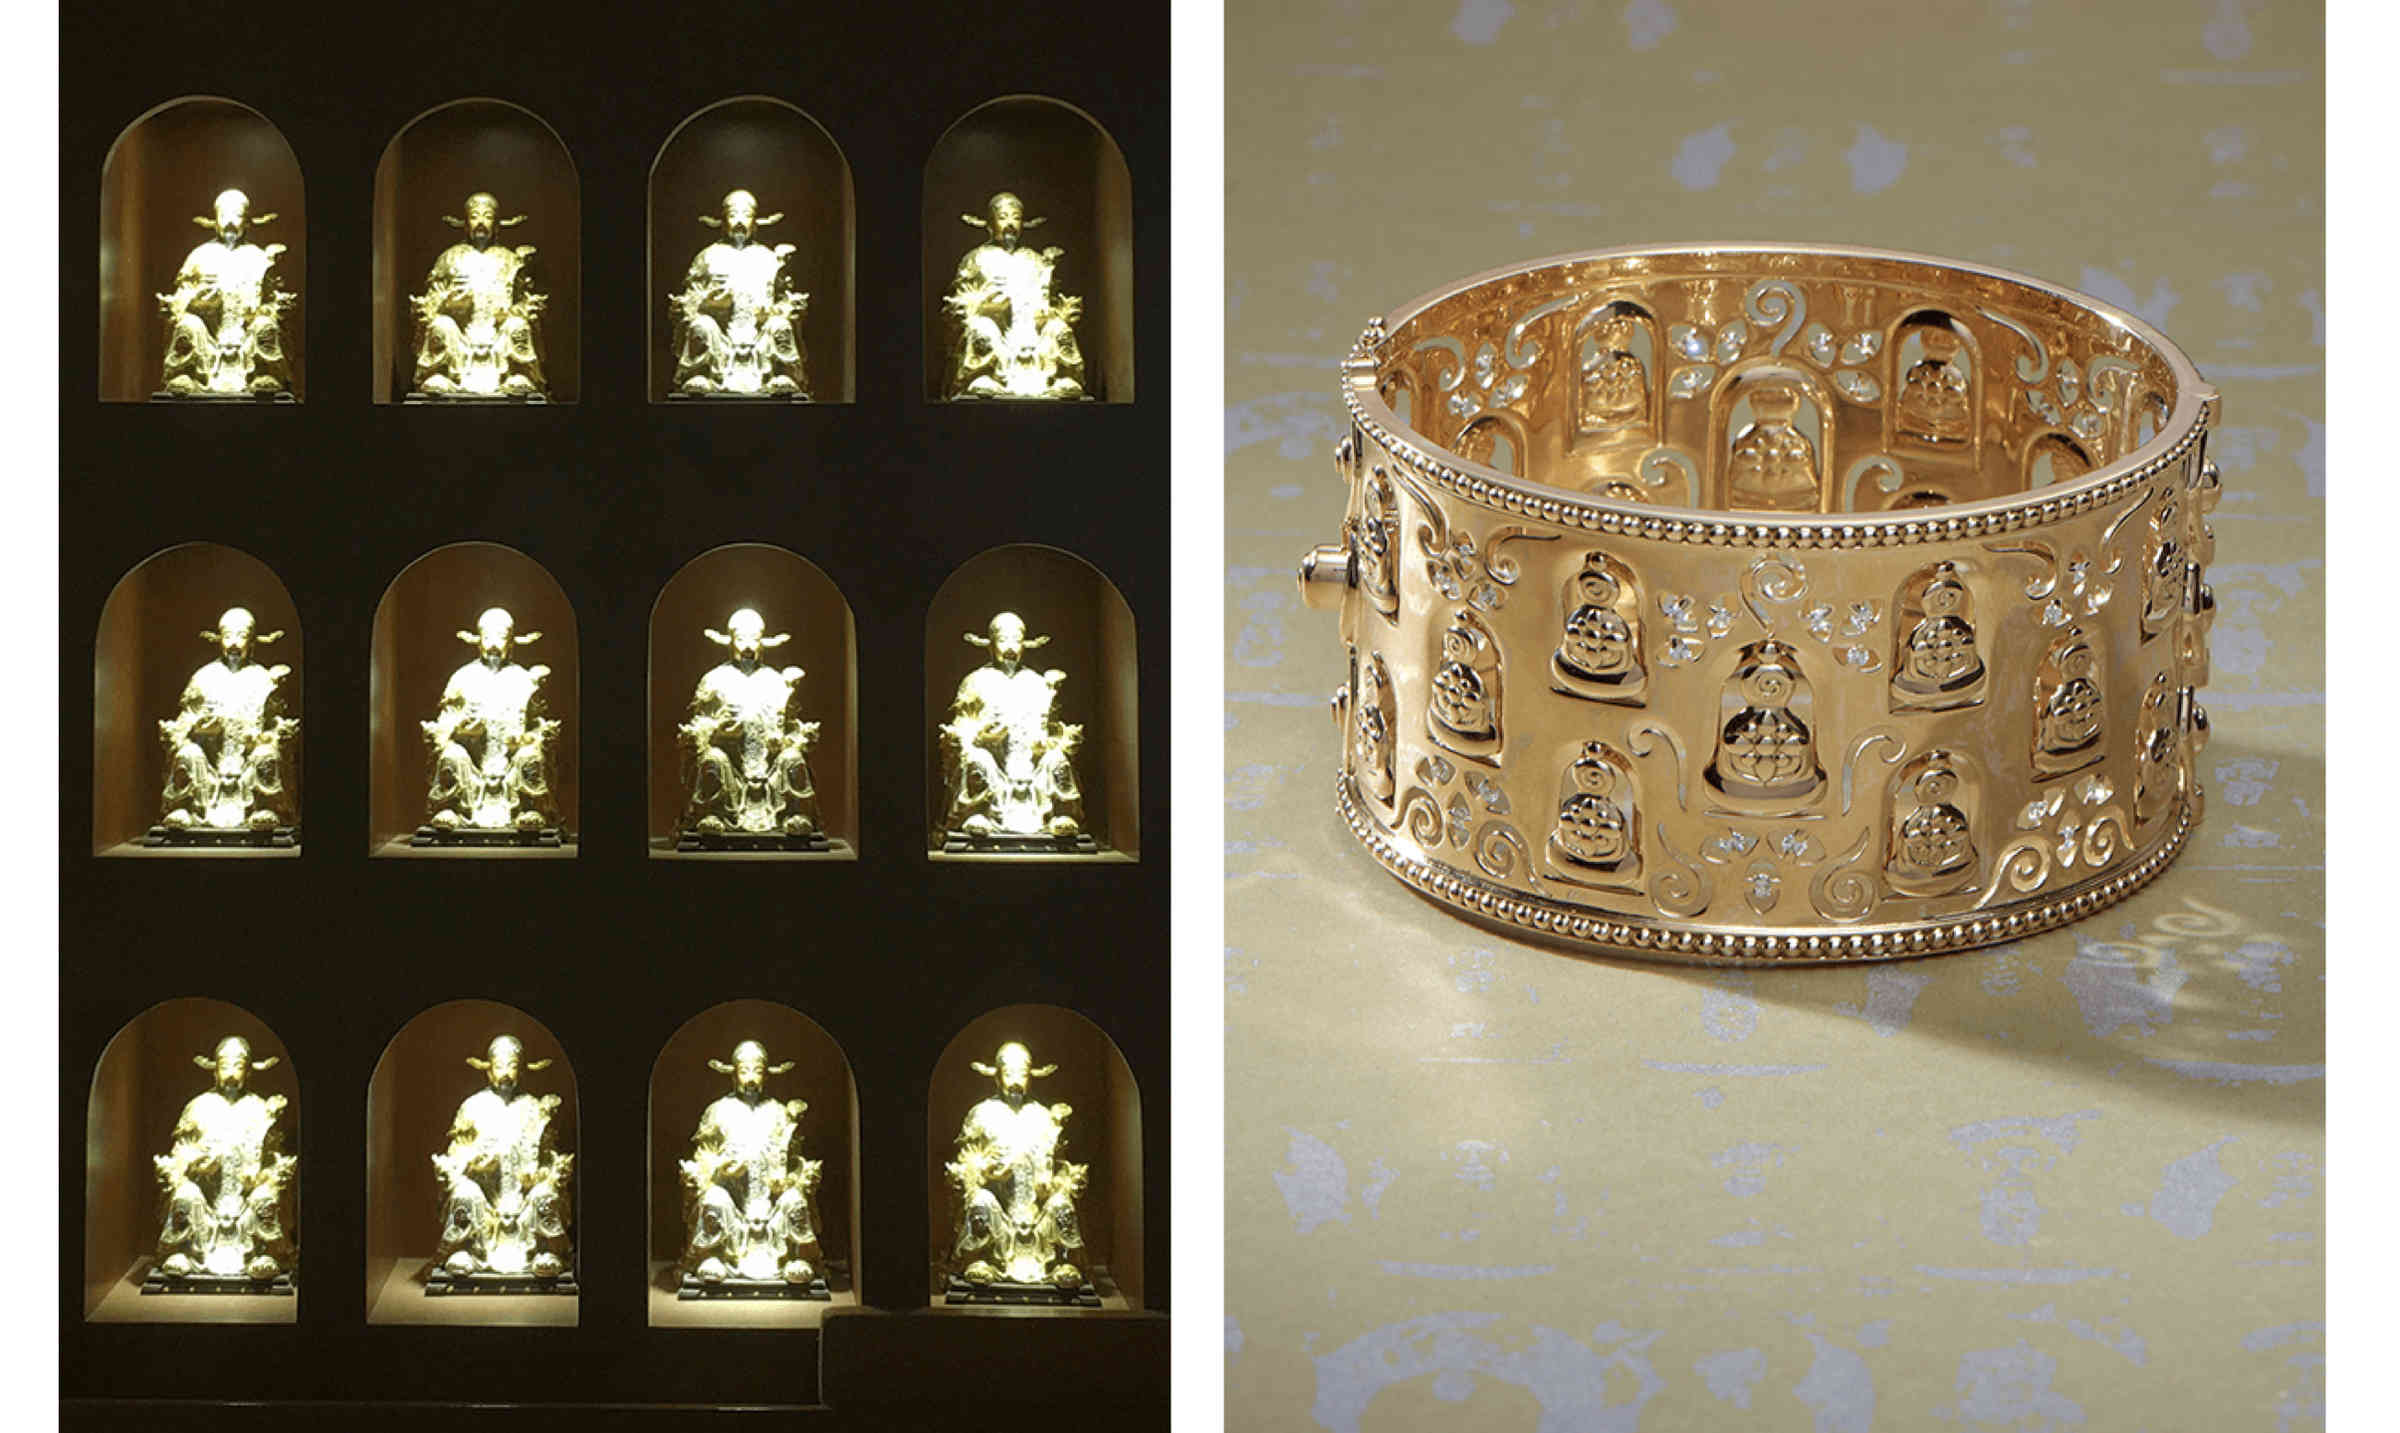 Wall of Buddhas in the Big Wild Goose Pagoda in Xi'an and Temple St. Clair 18K Thousand Buddha Bracelet